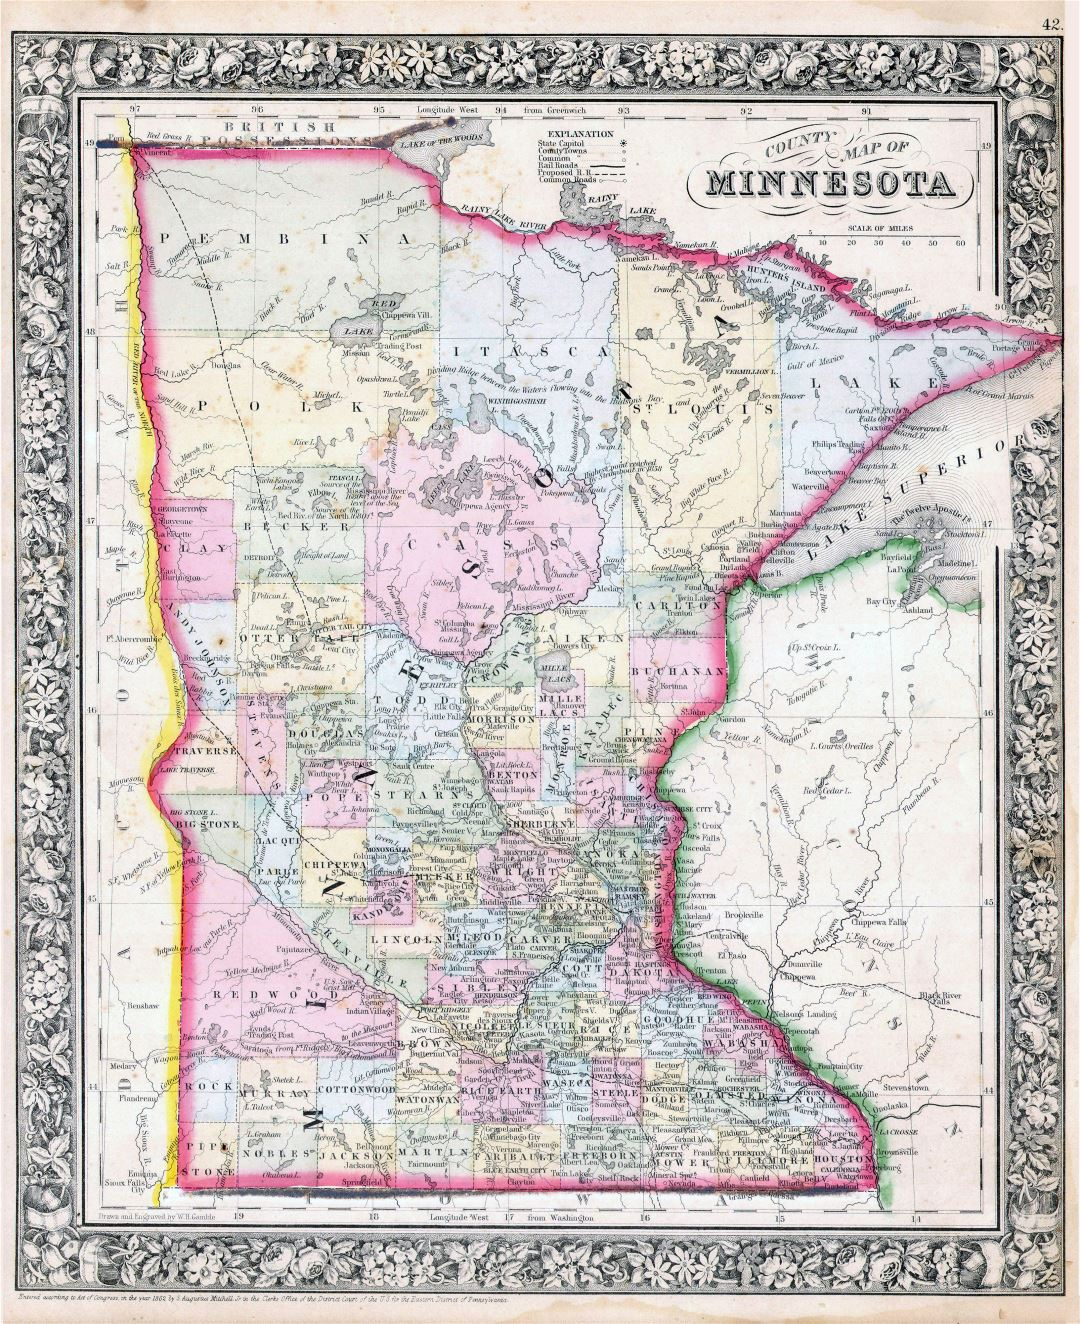 Large detailed old administrative map of Minnesota state with relief, roads, railroads and cities - 1864